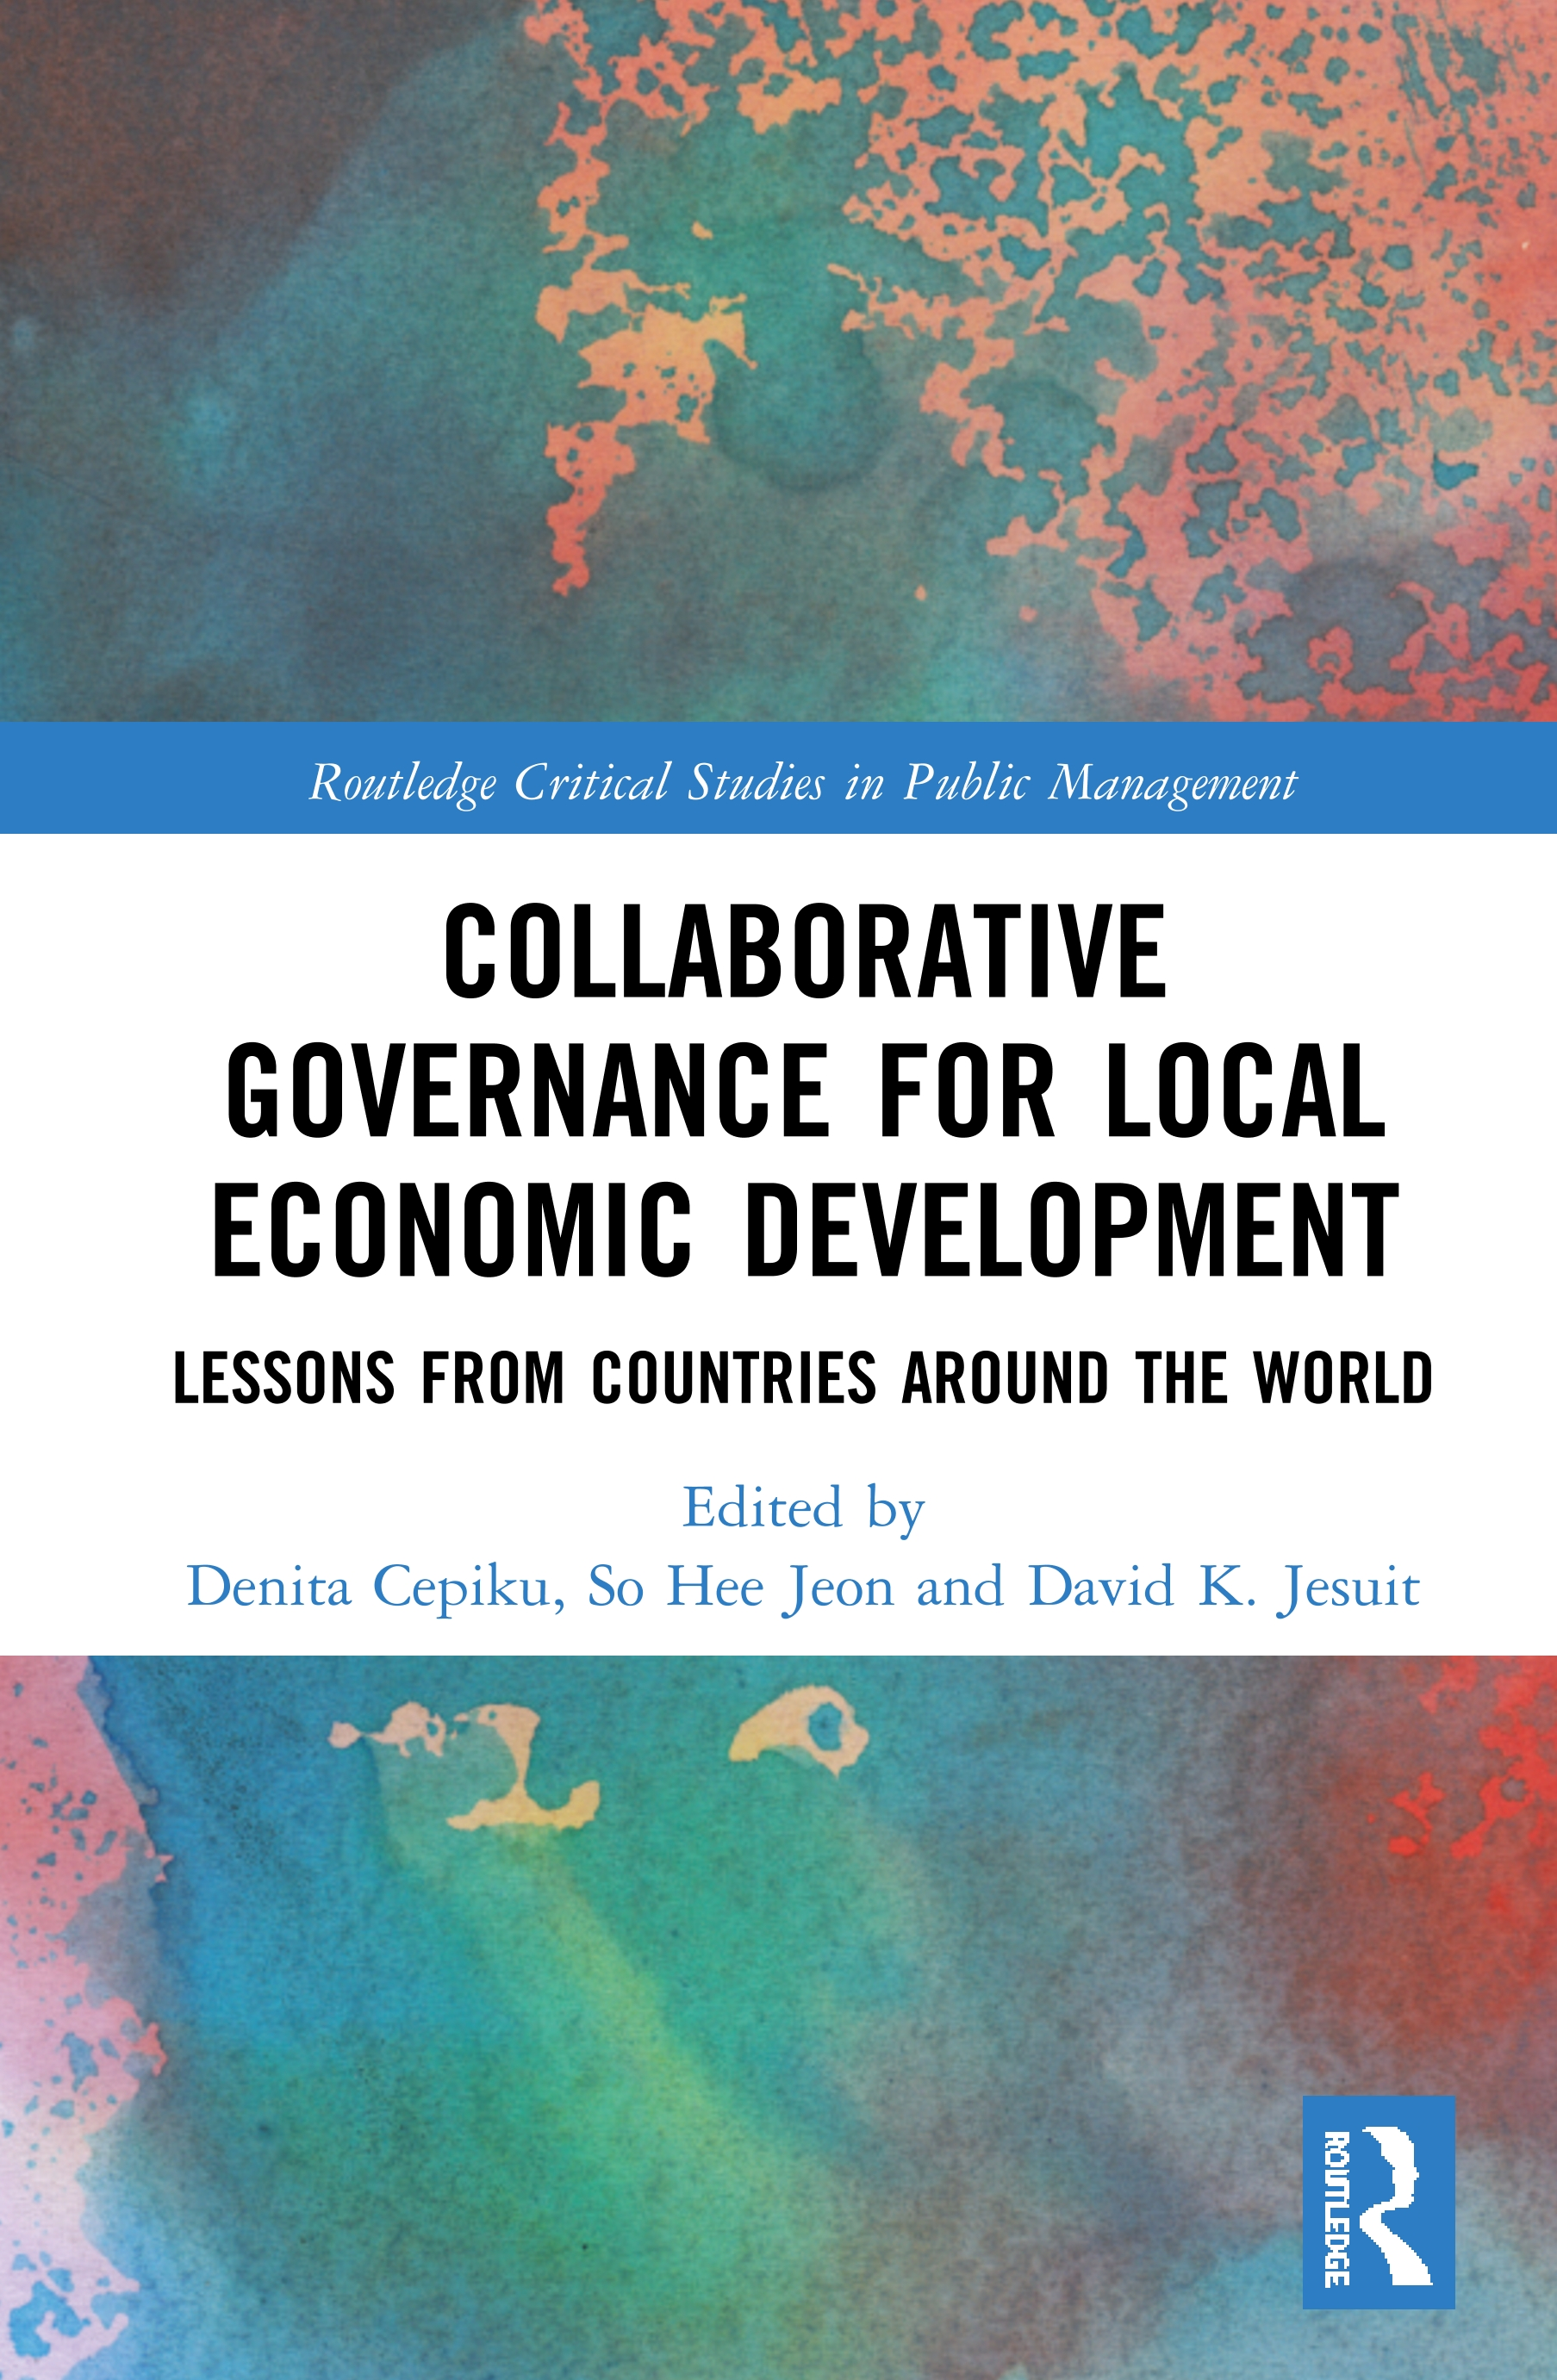 Collaborative Governance for Local Economic Development: Lessons from Countries around the World book cover